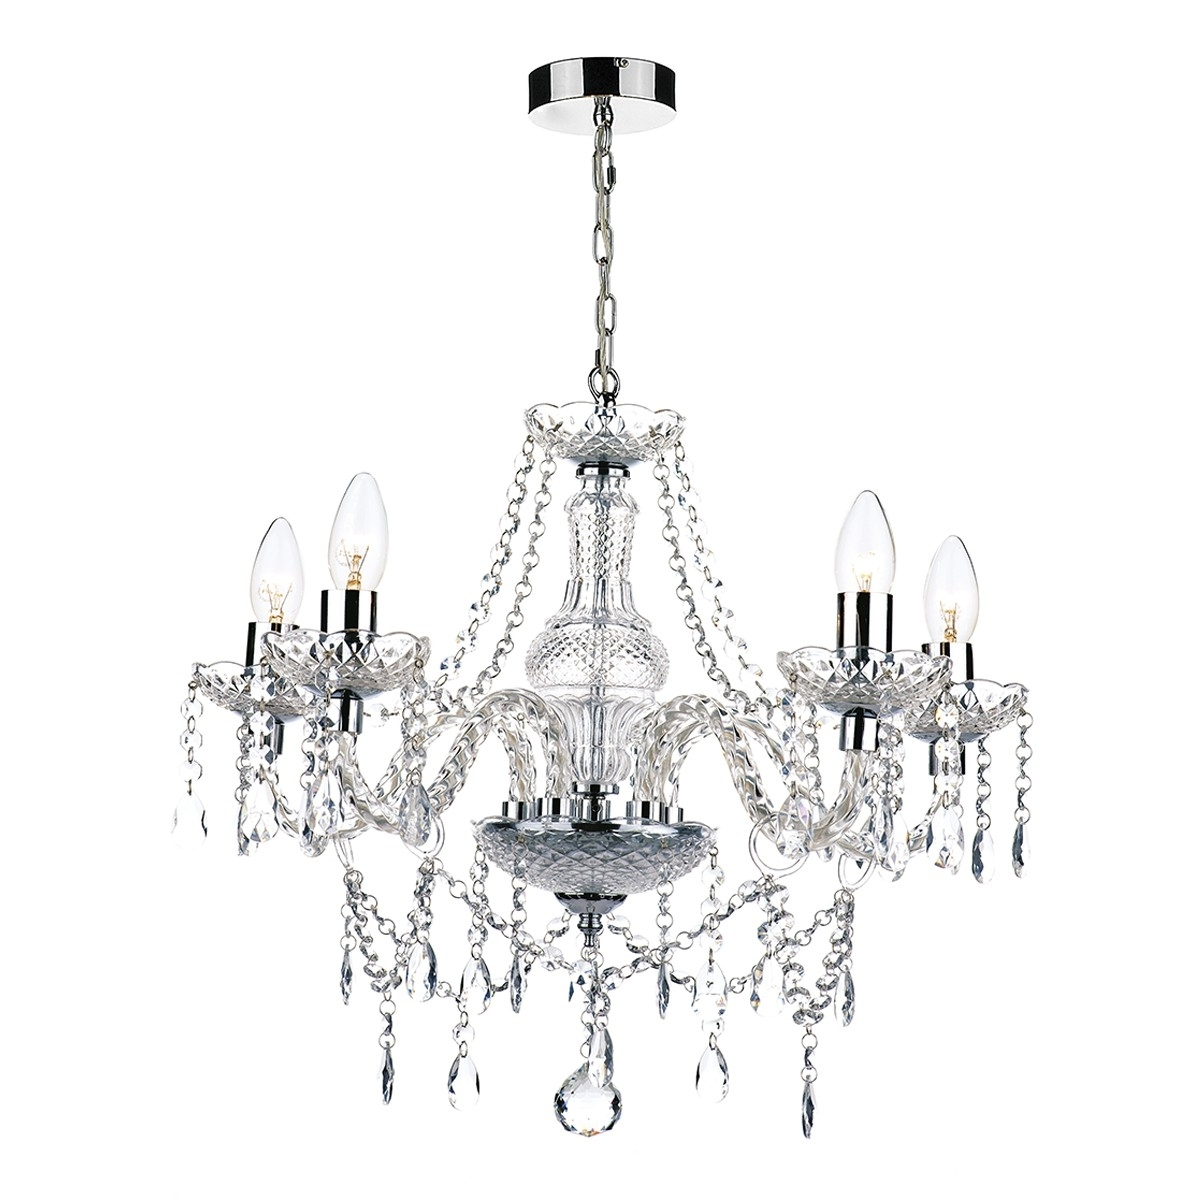 Trendy Light : Light Chandelier Katie Polished Chrome Acrylic Glass Silver Pertaining To Turquoise Crystal Chandelier Lights (View 16 of 20)